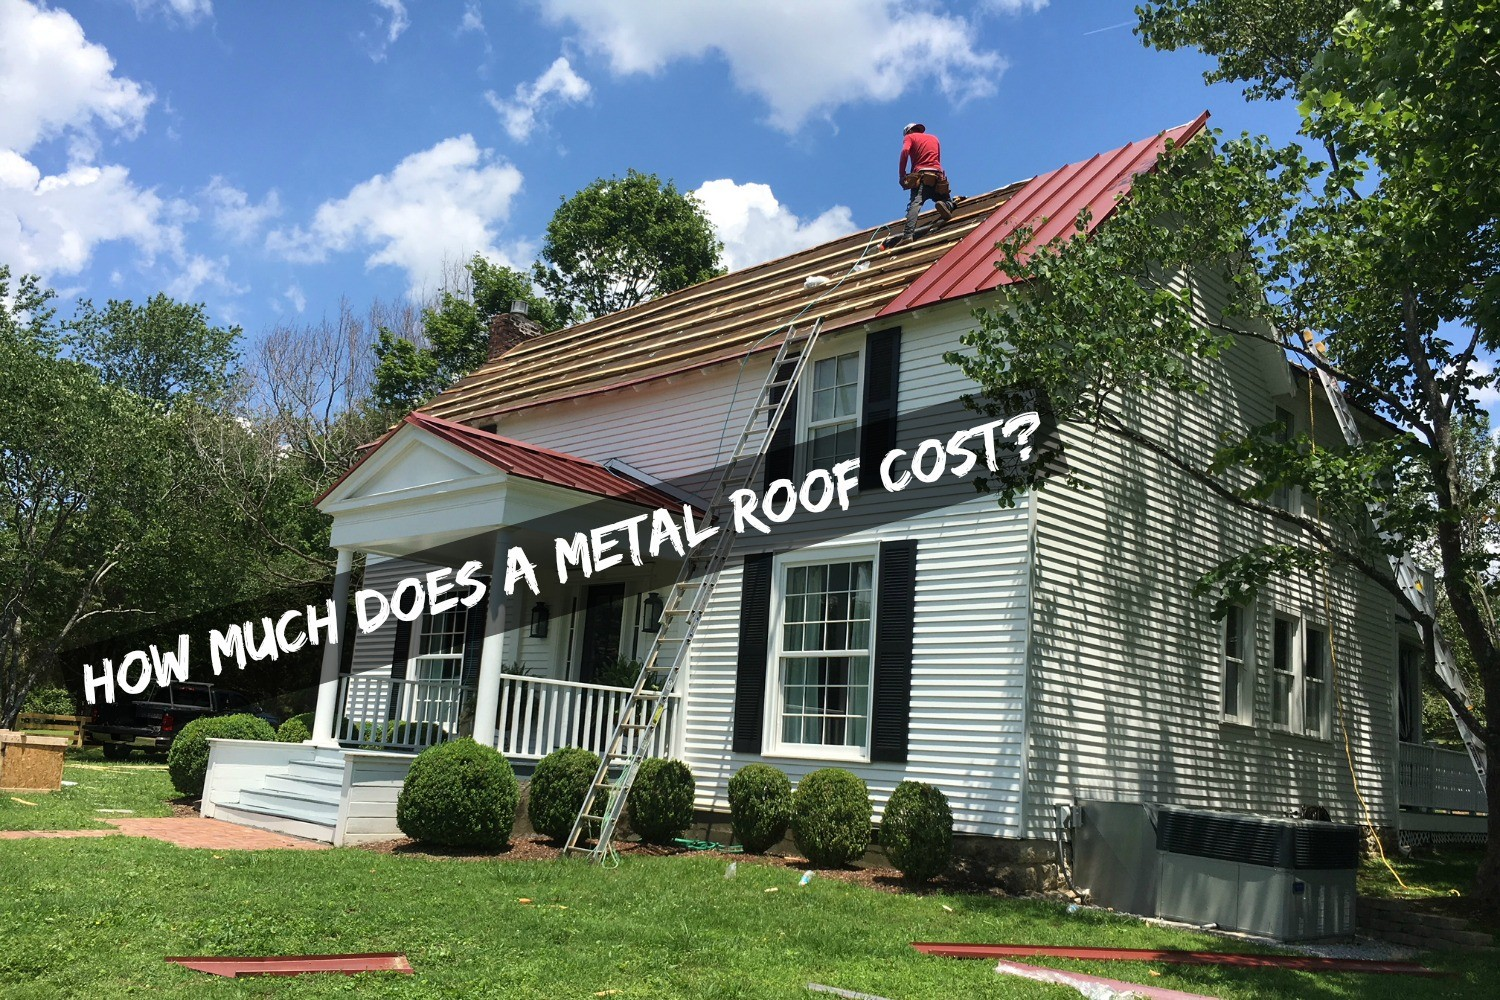 What is the cost for a metal roof in Nashville, TN